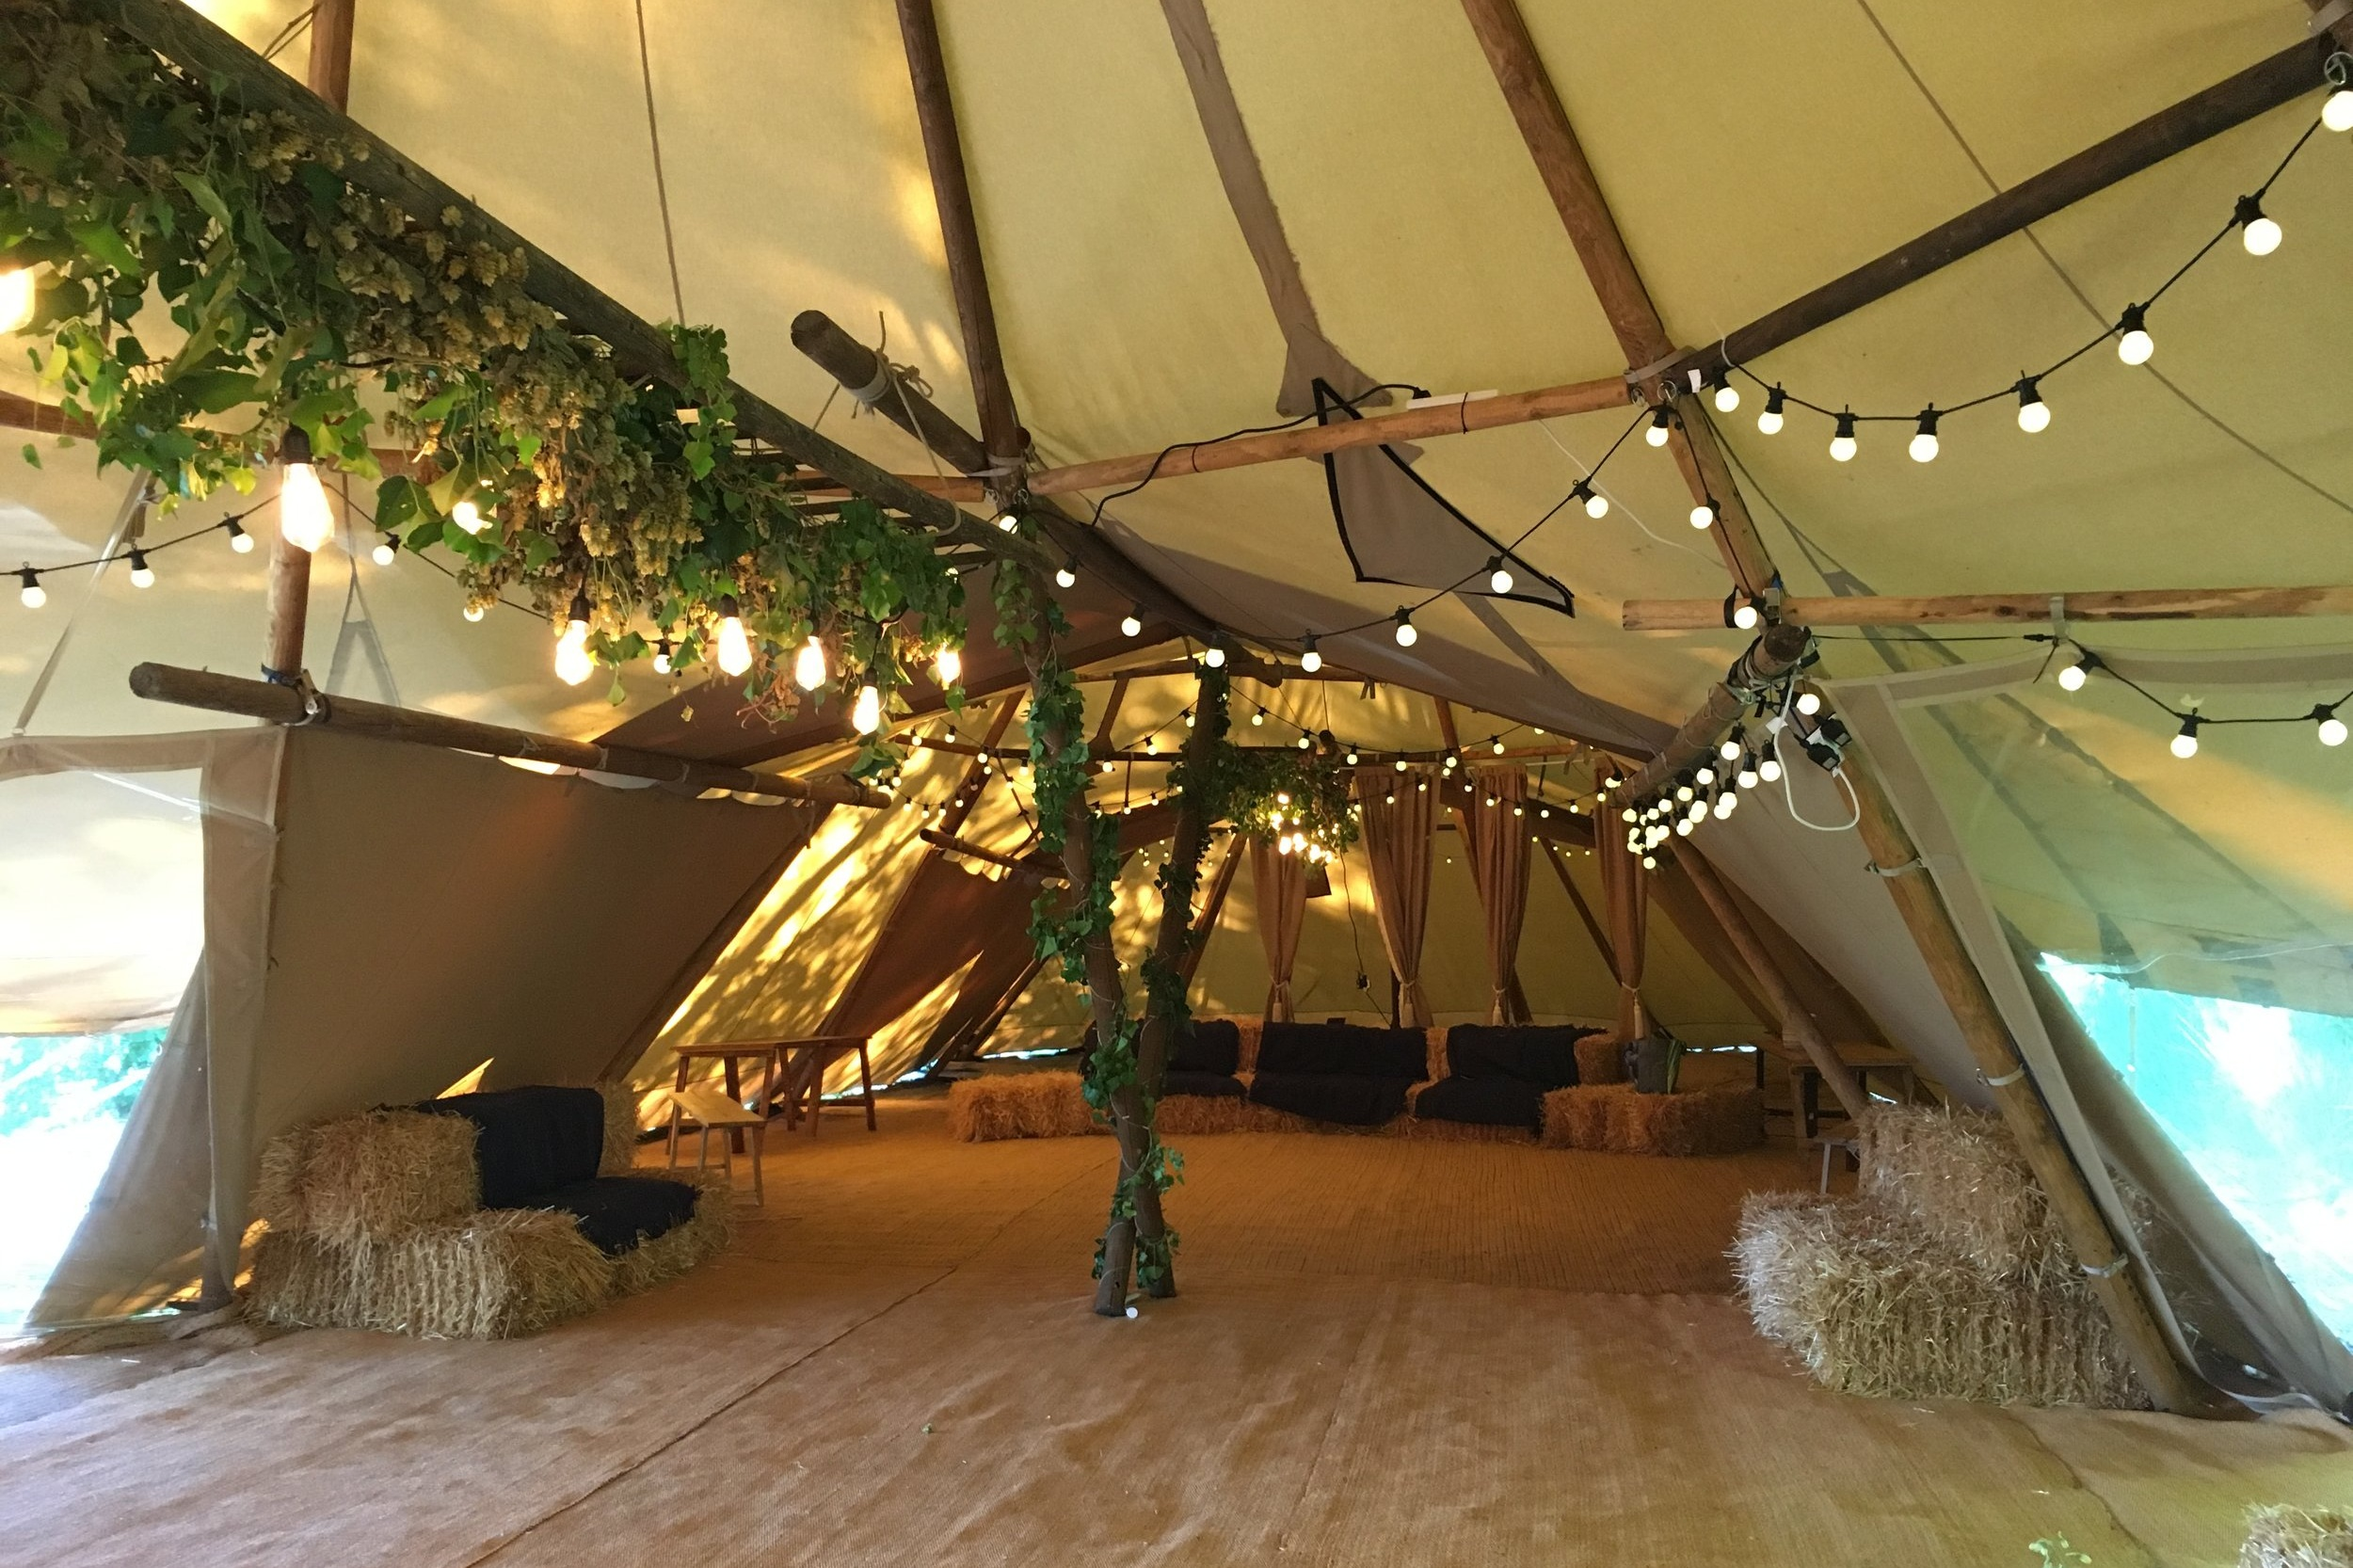 The tipi forms part of Preston Court's 'Wilderness Weddings'.